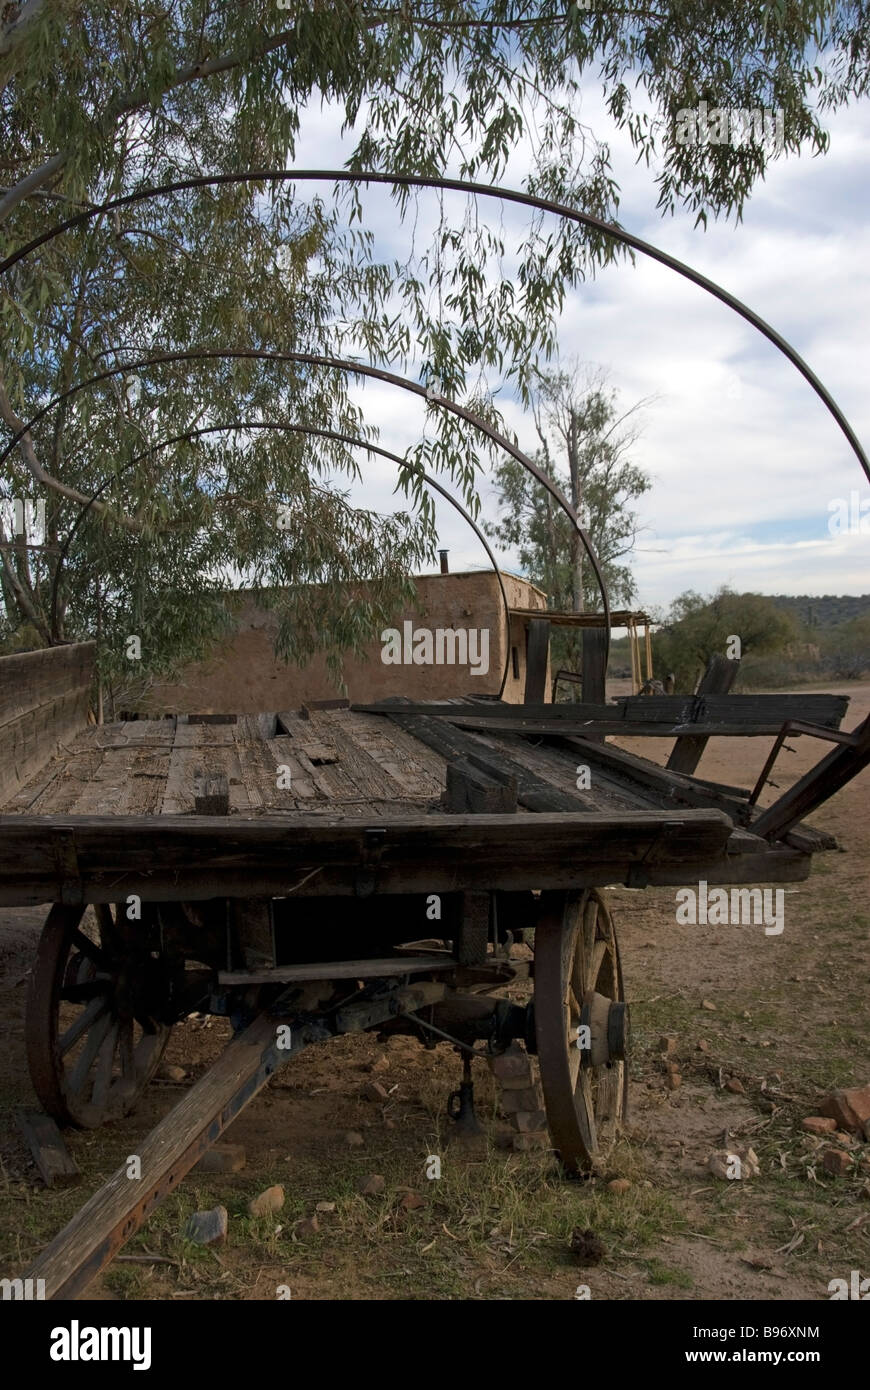 1800s covered wagon stock photos  u0026 1800s covered wagon stock images